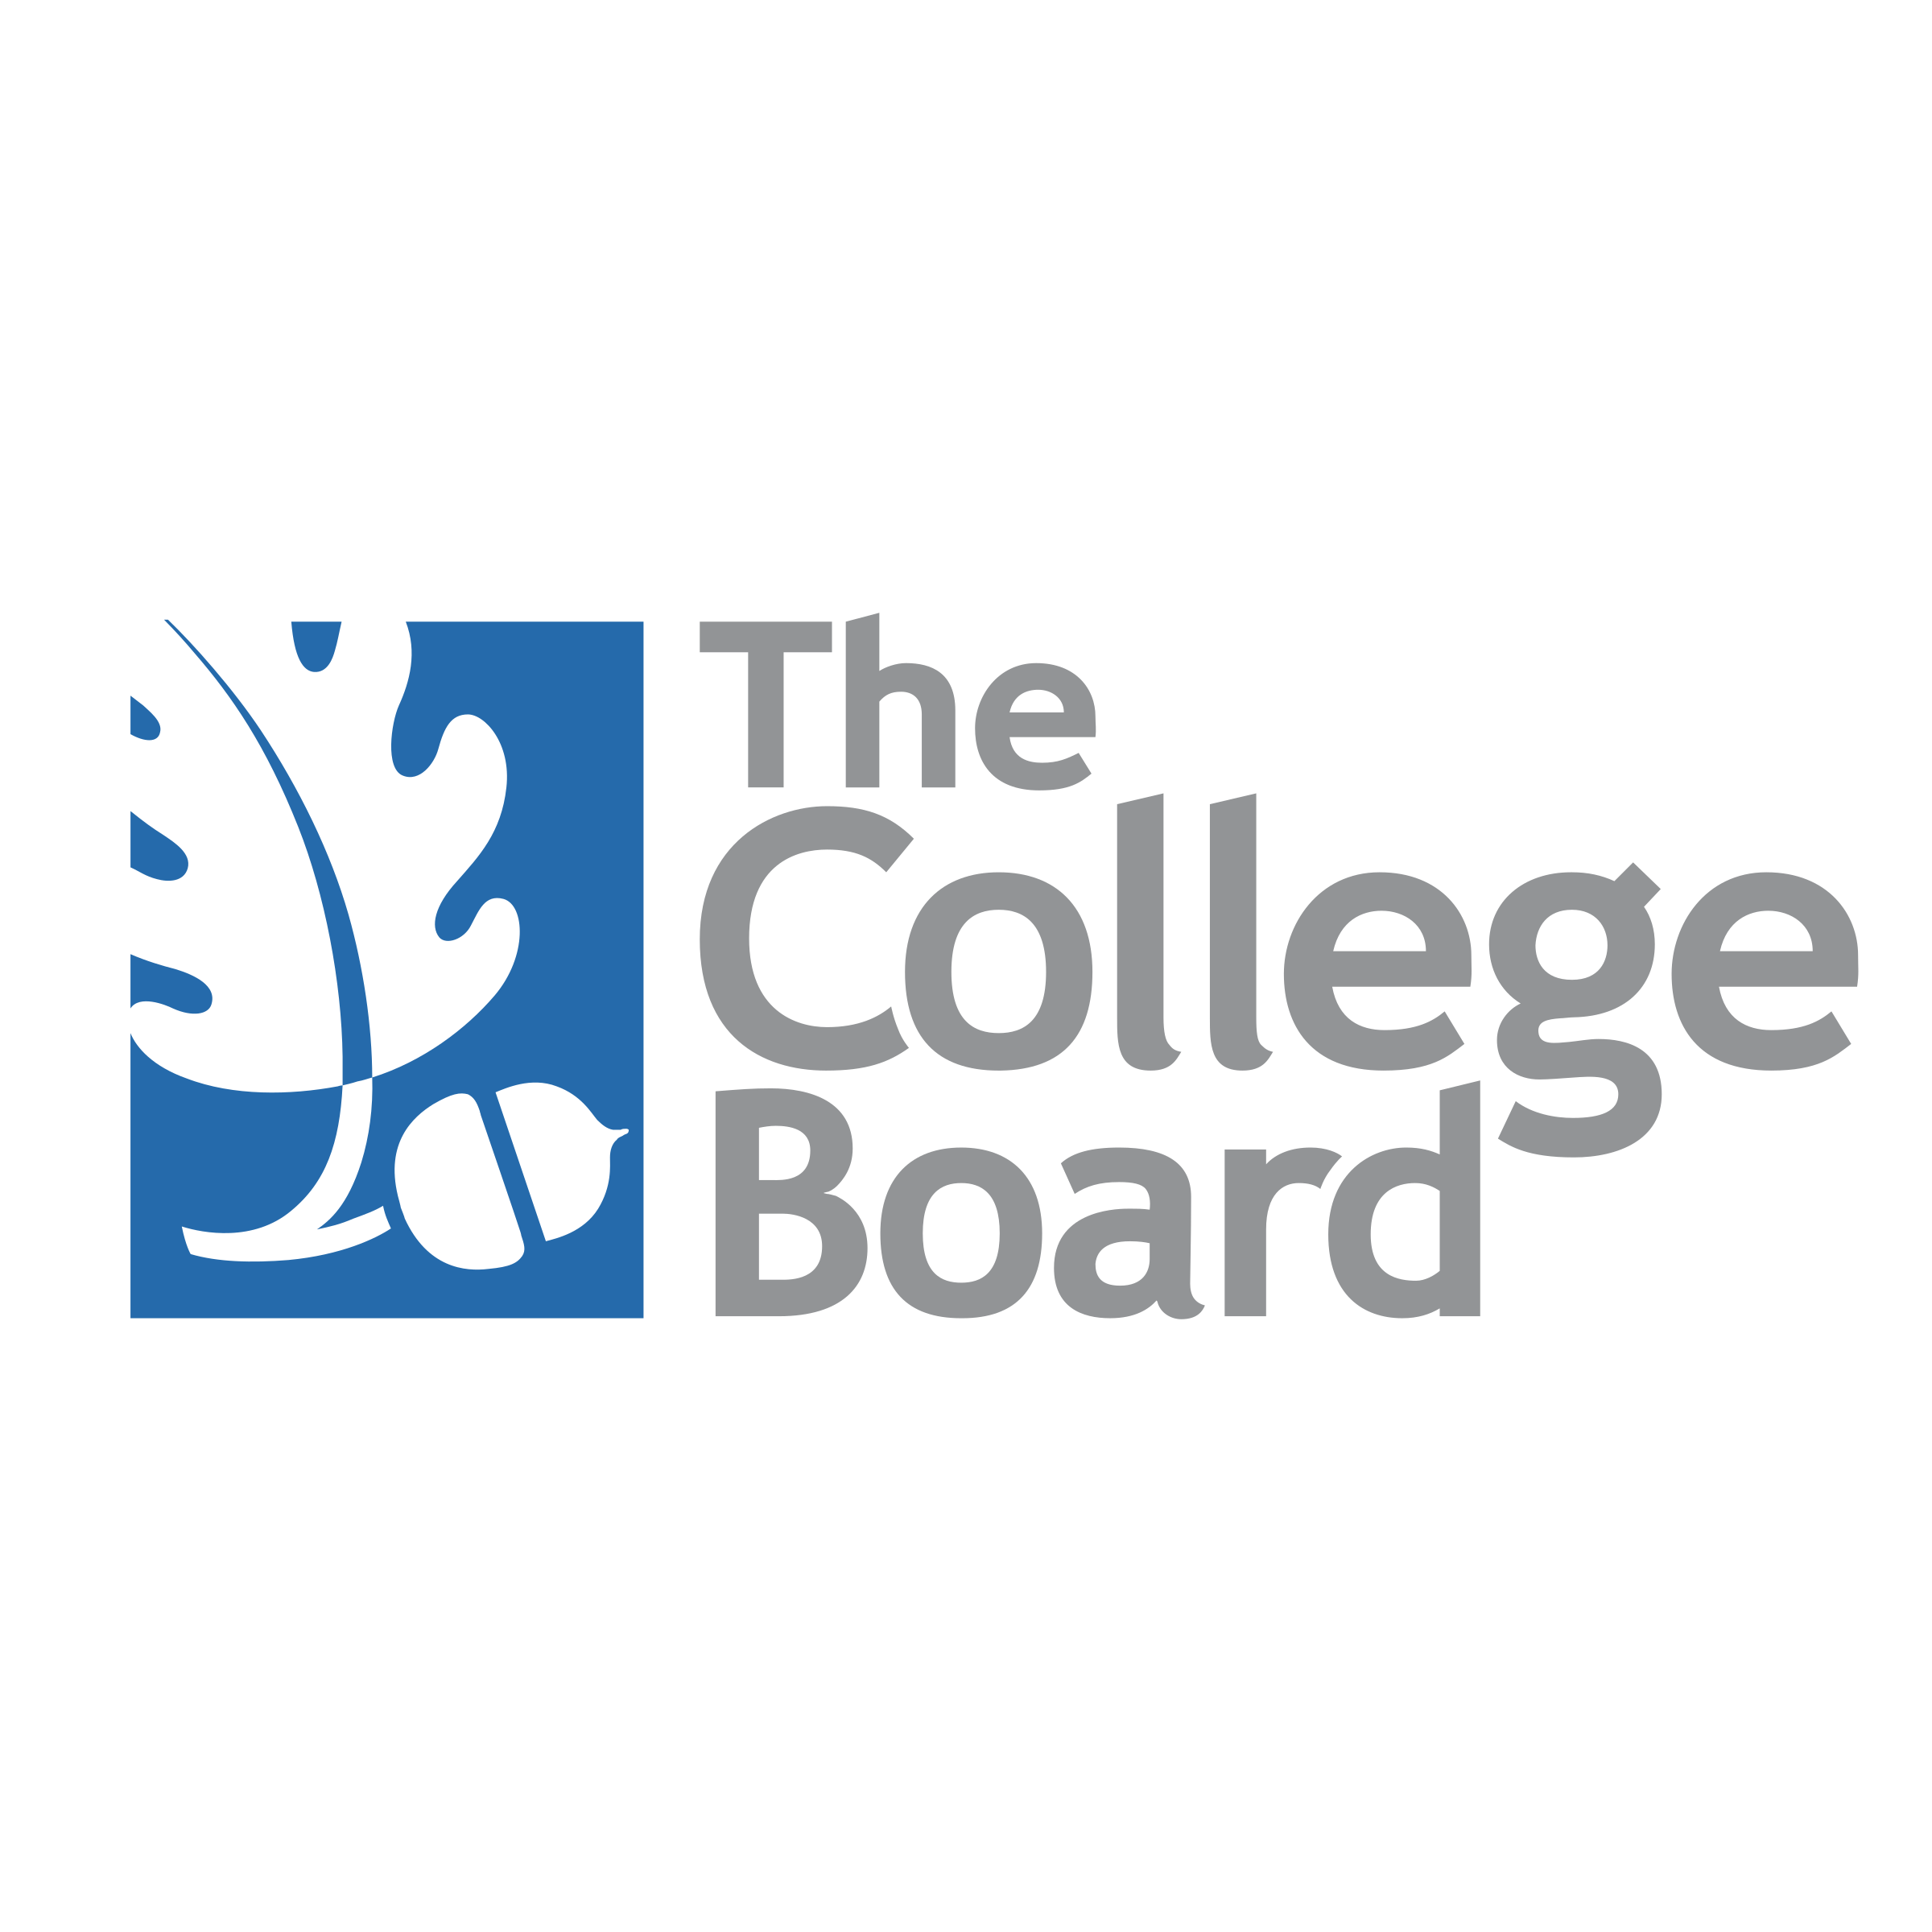 The College Board Logo PNG Transparent & SVG Vector - Freebie Supply